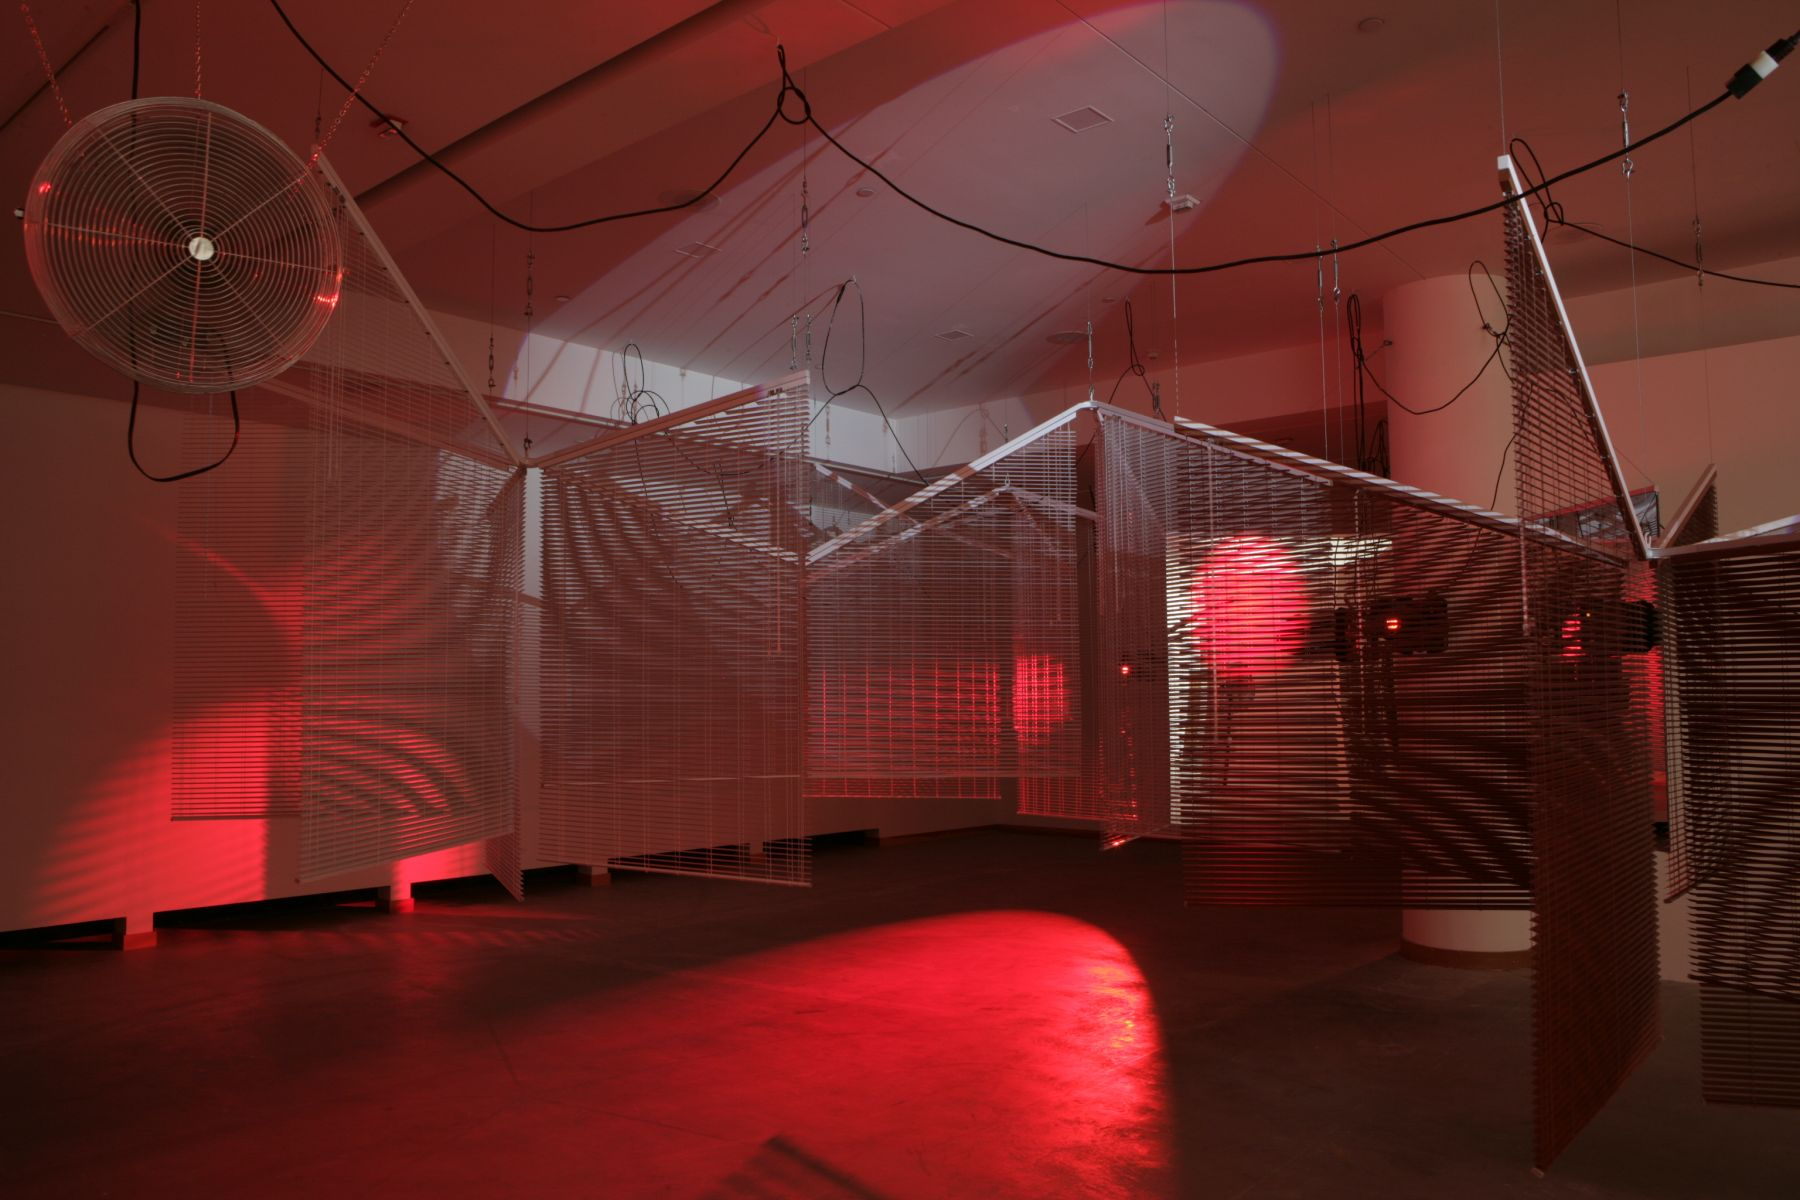 Haegue Yang, Asymmetric Equality, Installation view, REDCAT, Los Angeles, 2008